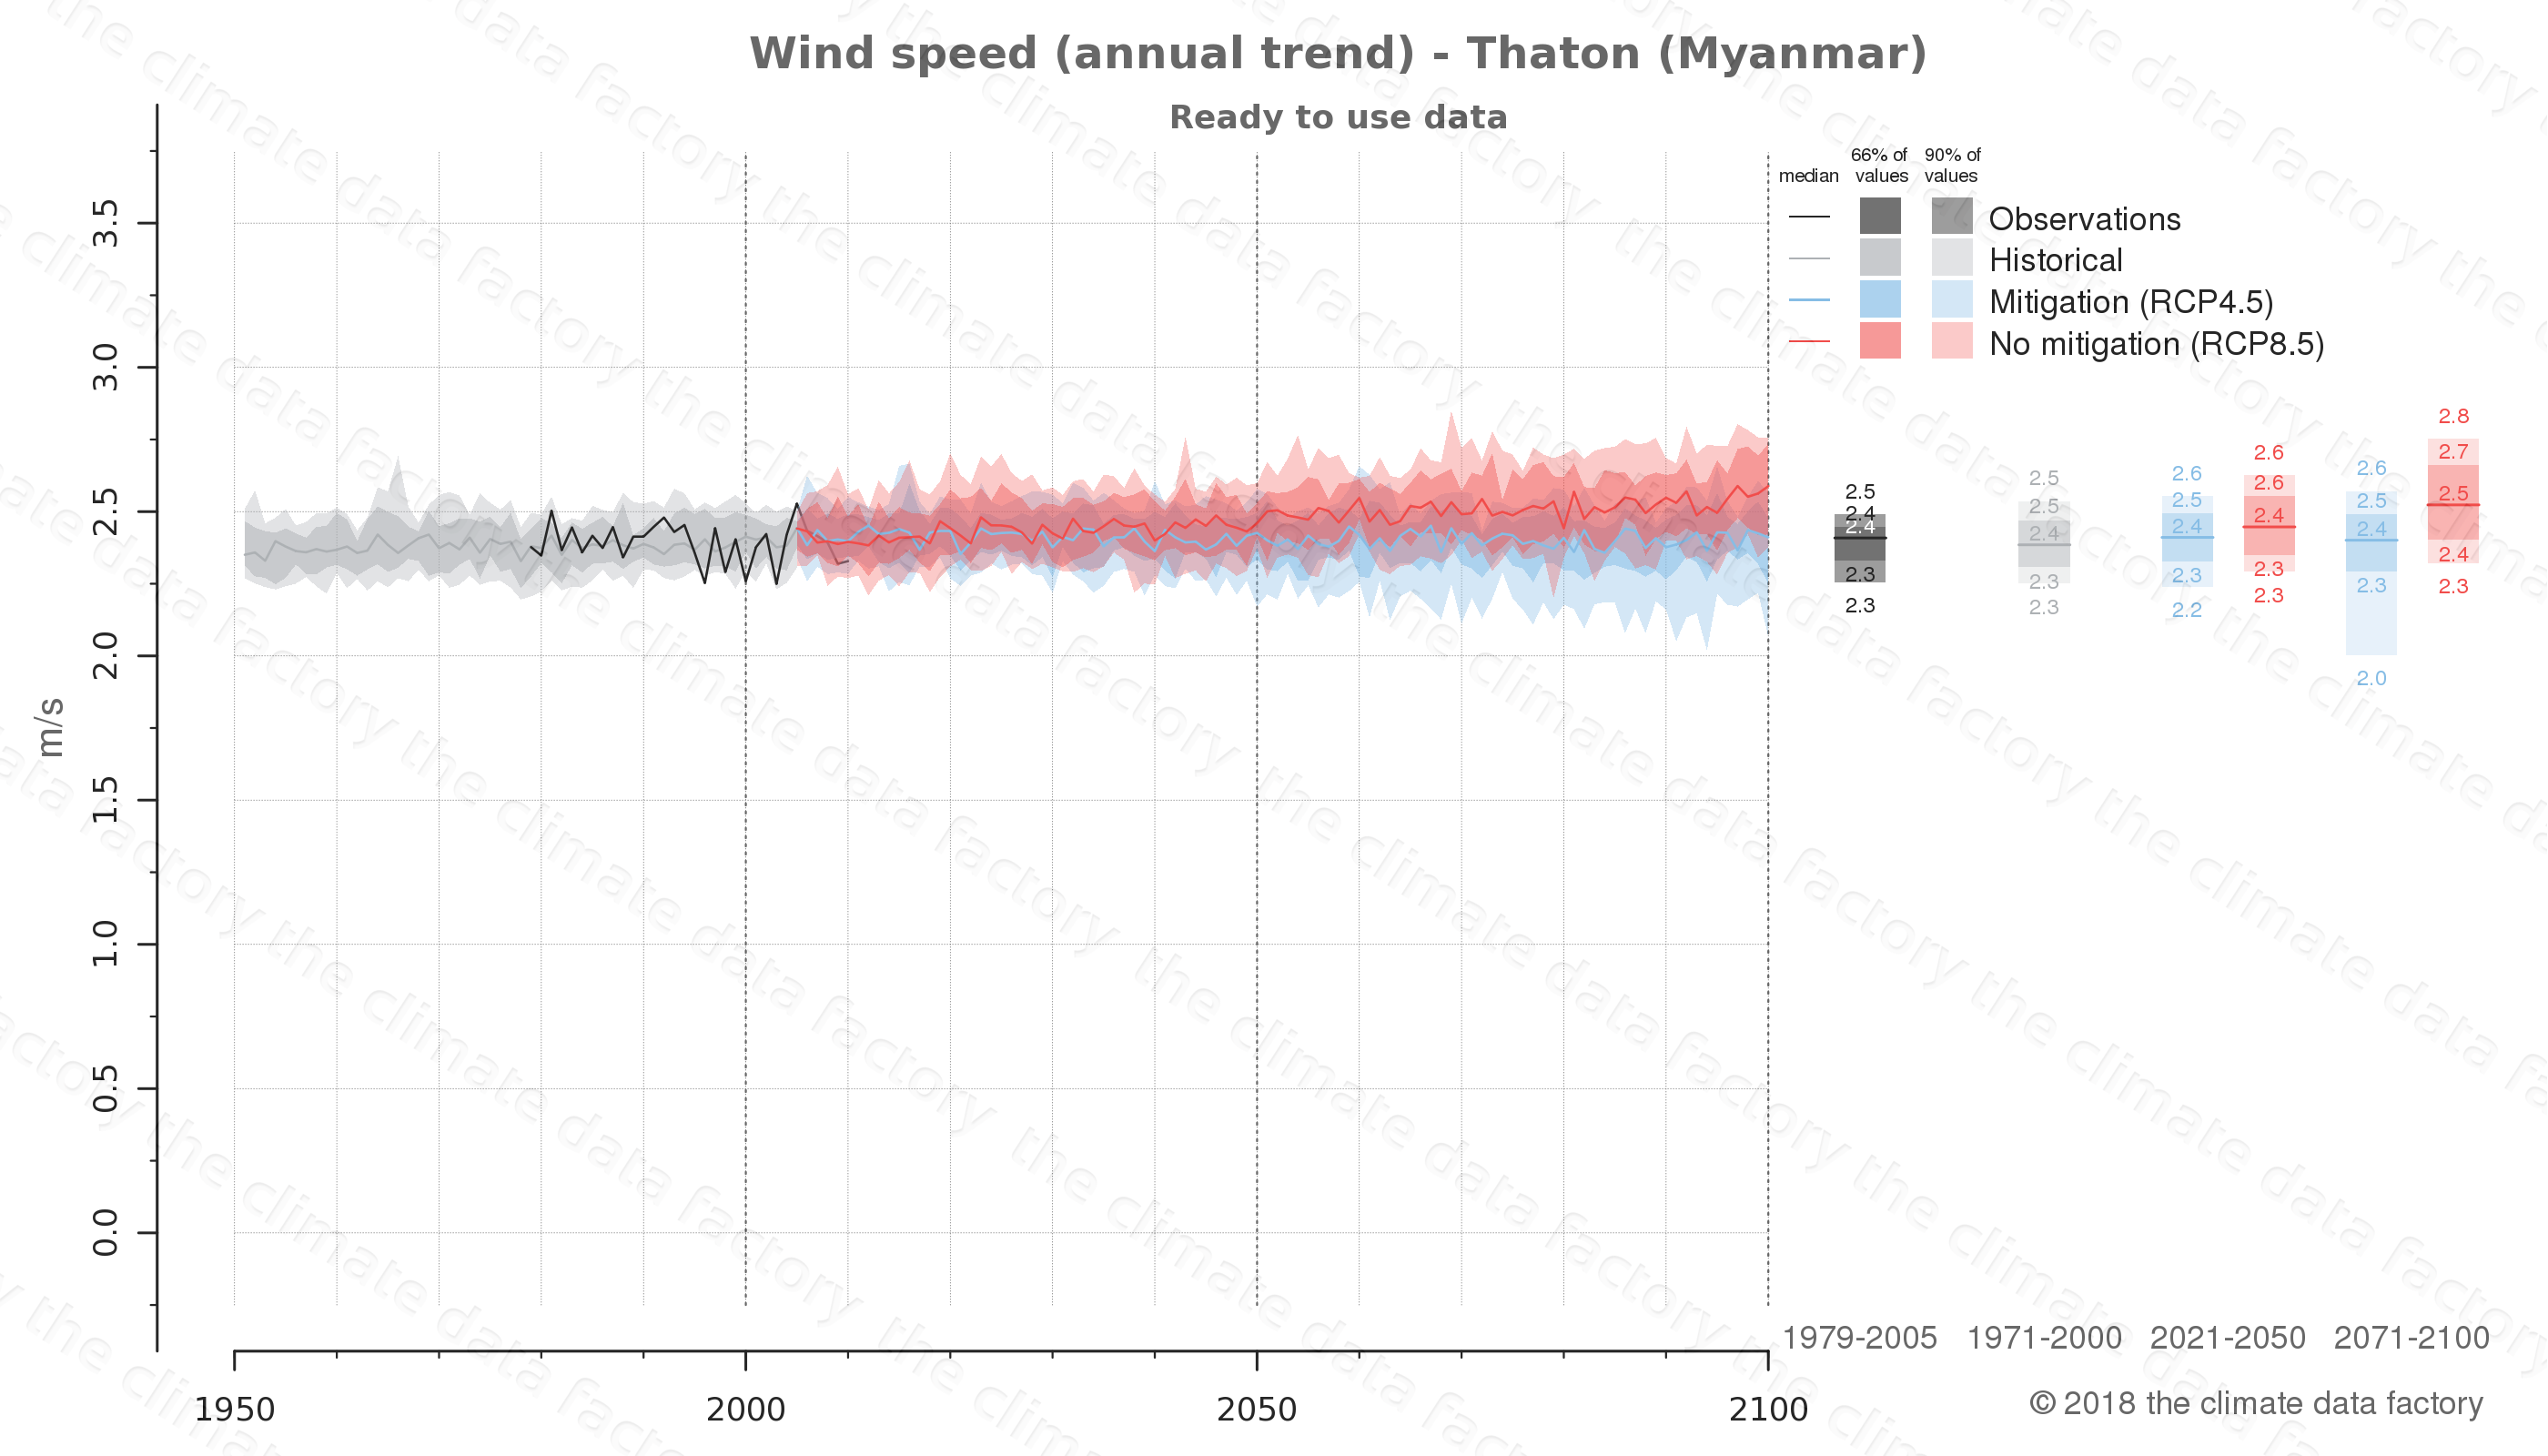 climate change data policy adaptation climate graph city data wind-speed thaton myanmar